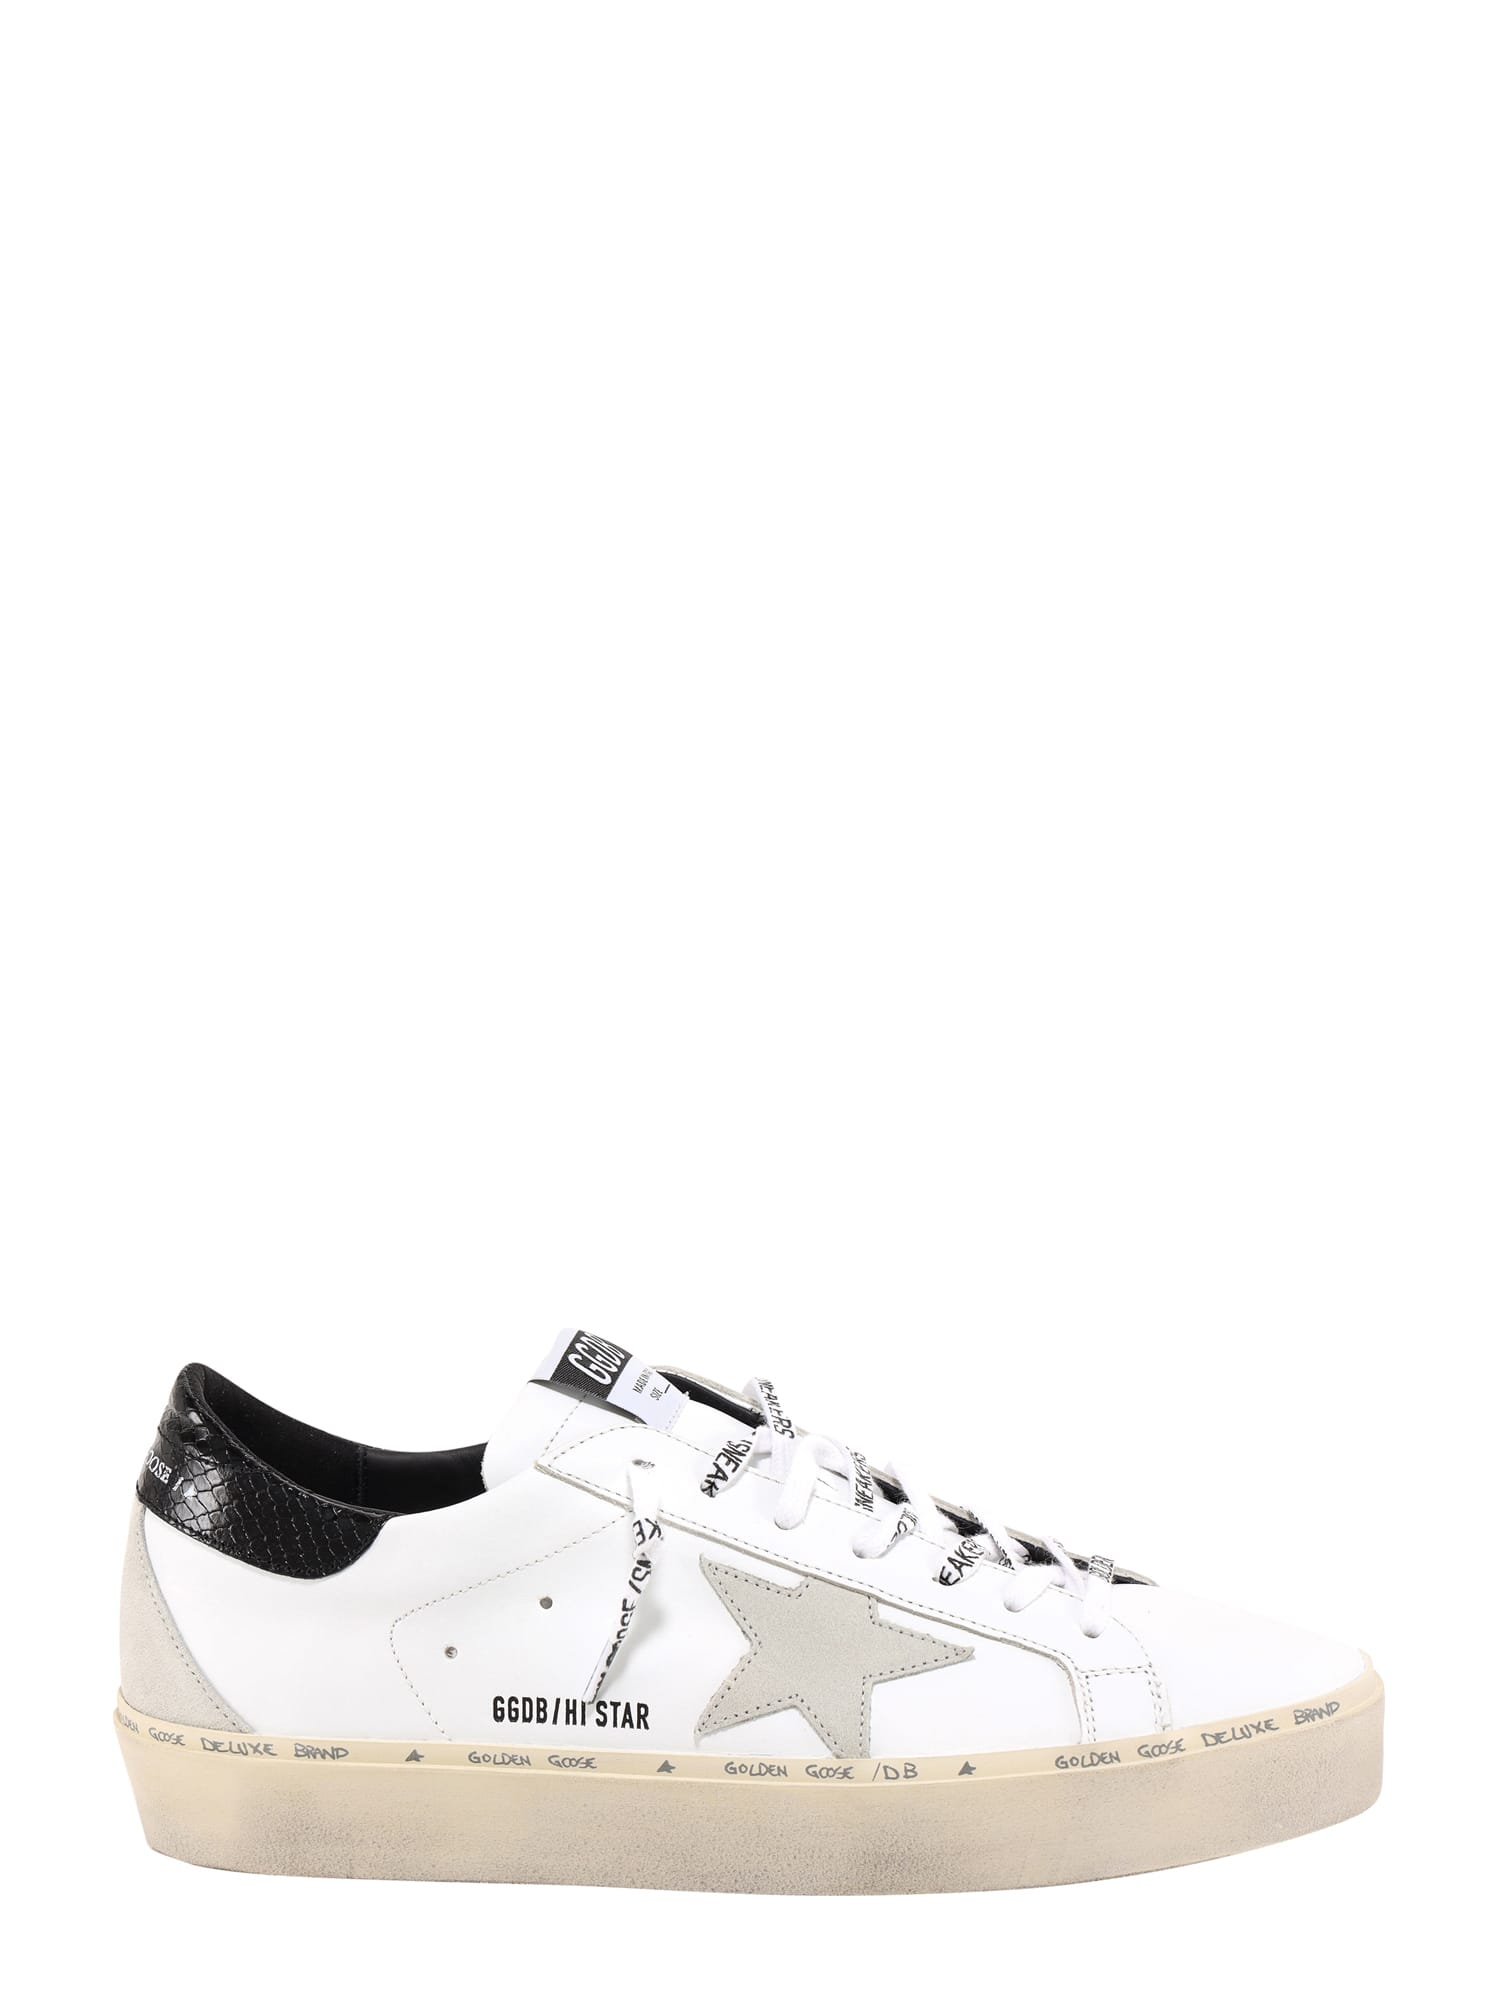 Golden Goose Leathers HI STAR SNEAKERS